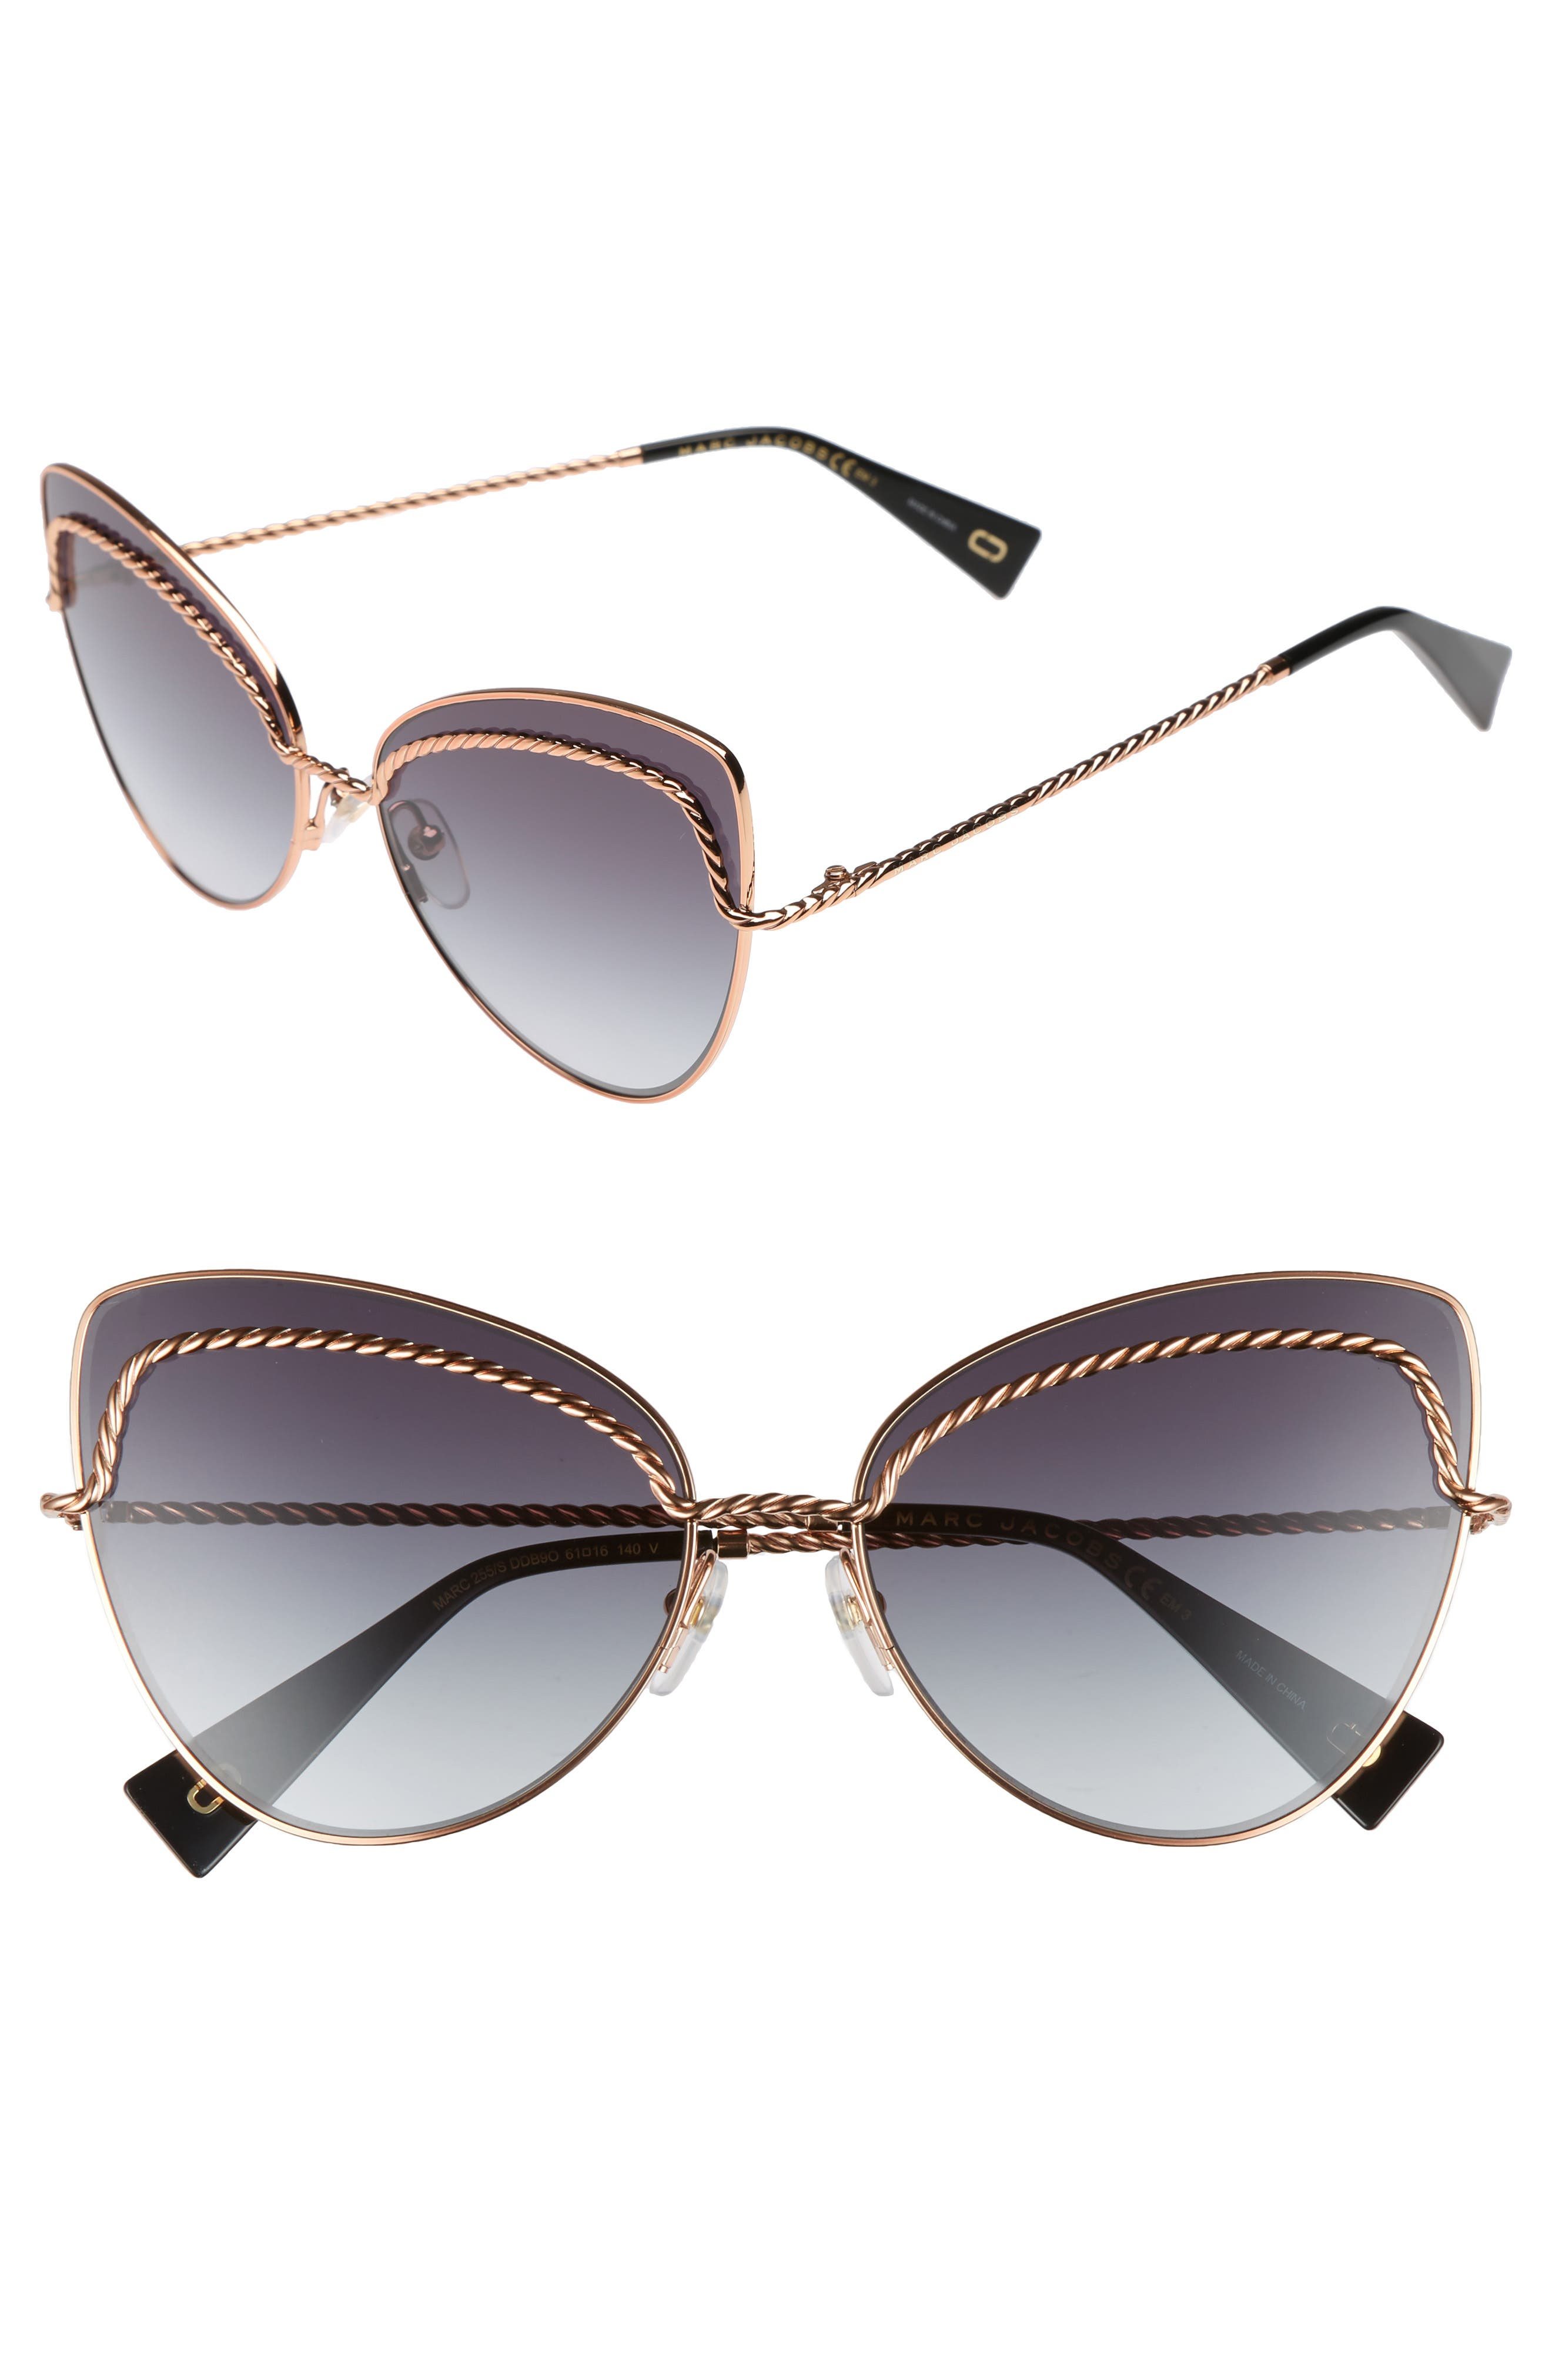 61mm Butterfly Sunglasses,                         Main,                         color, 710